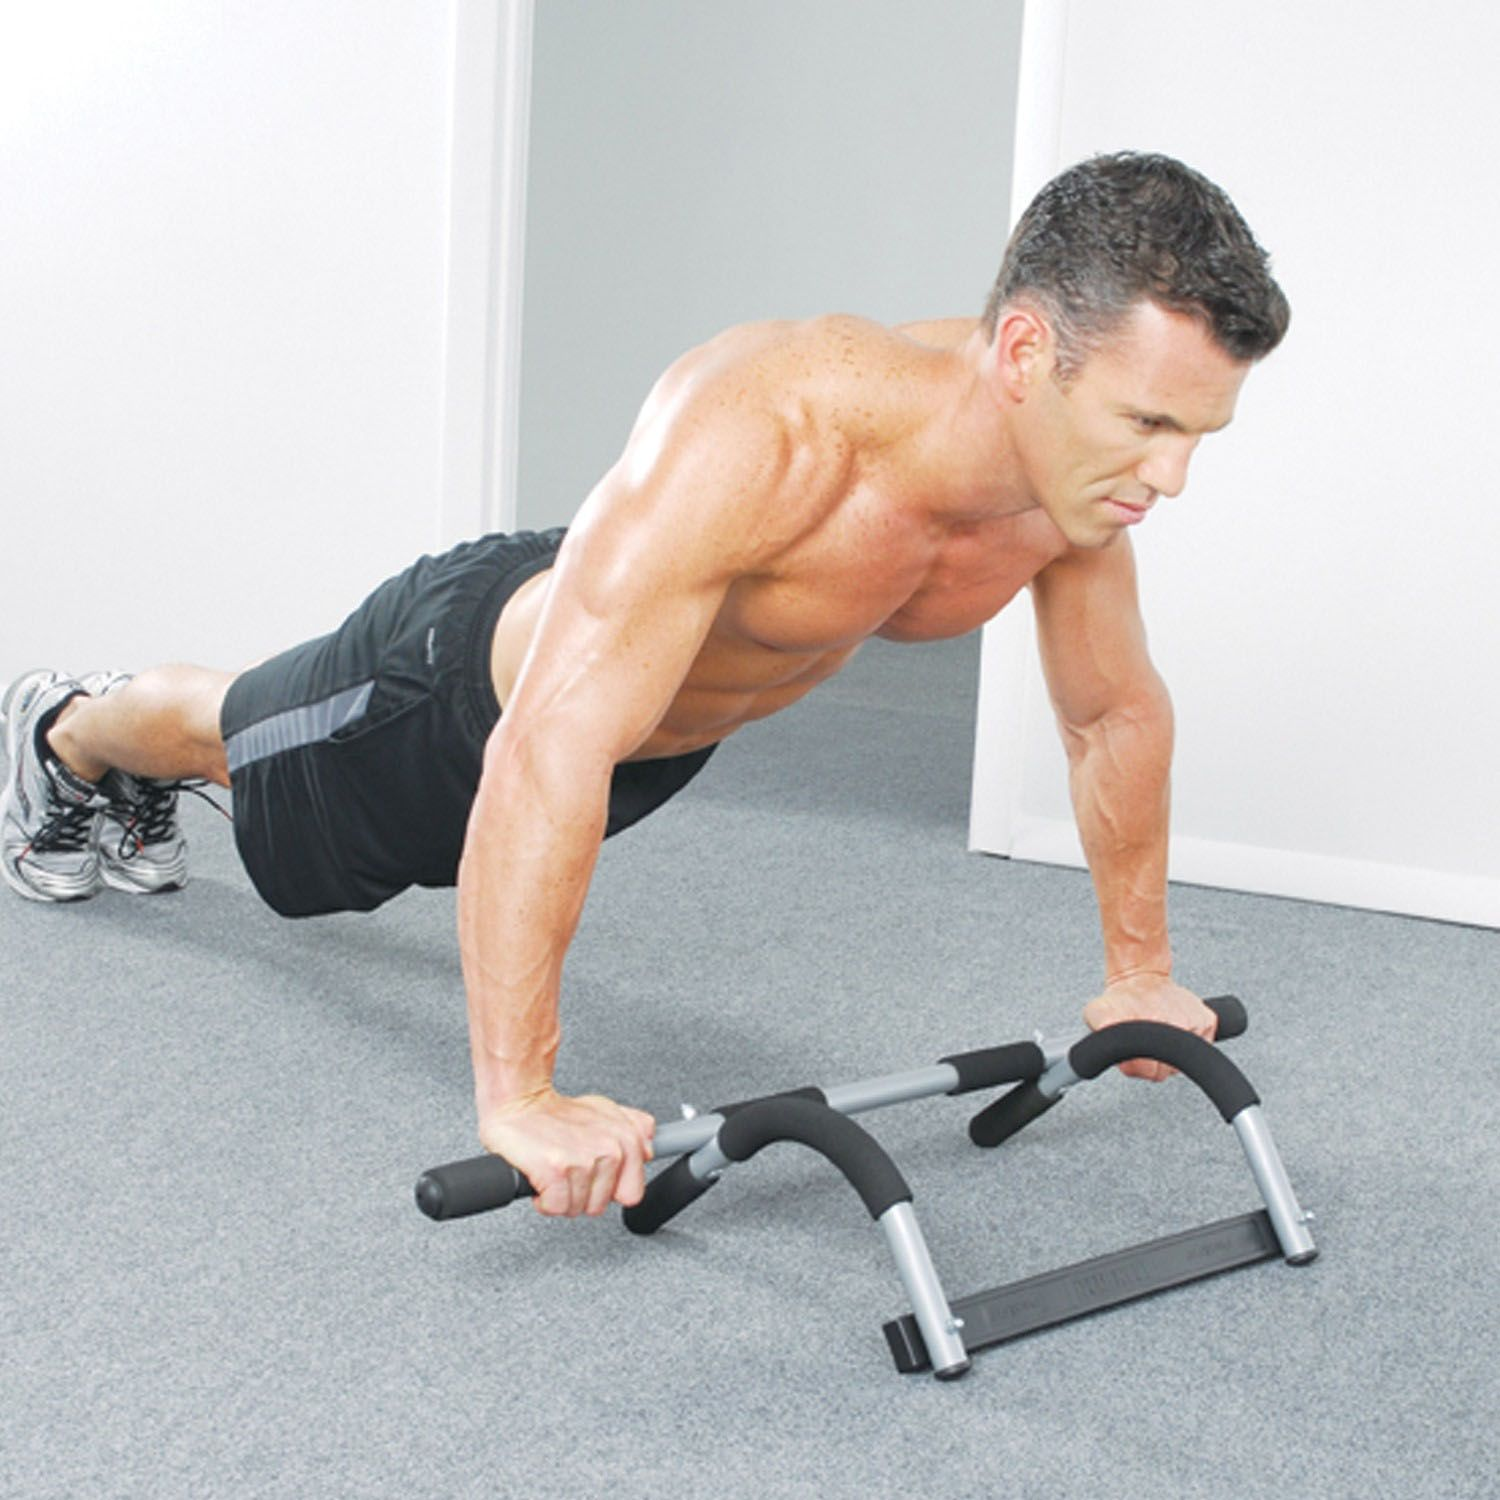 exercise instructions for total gym